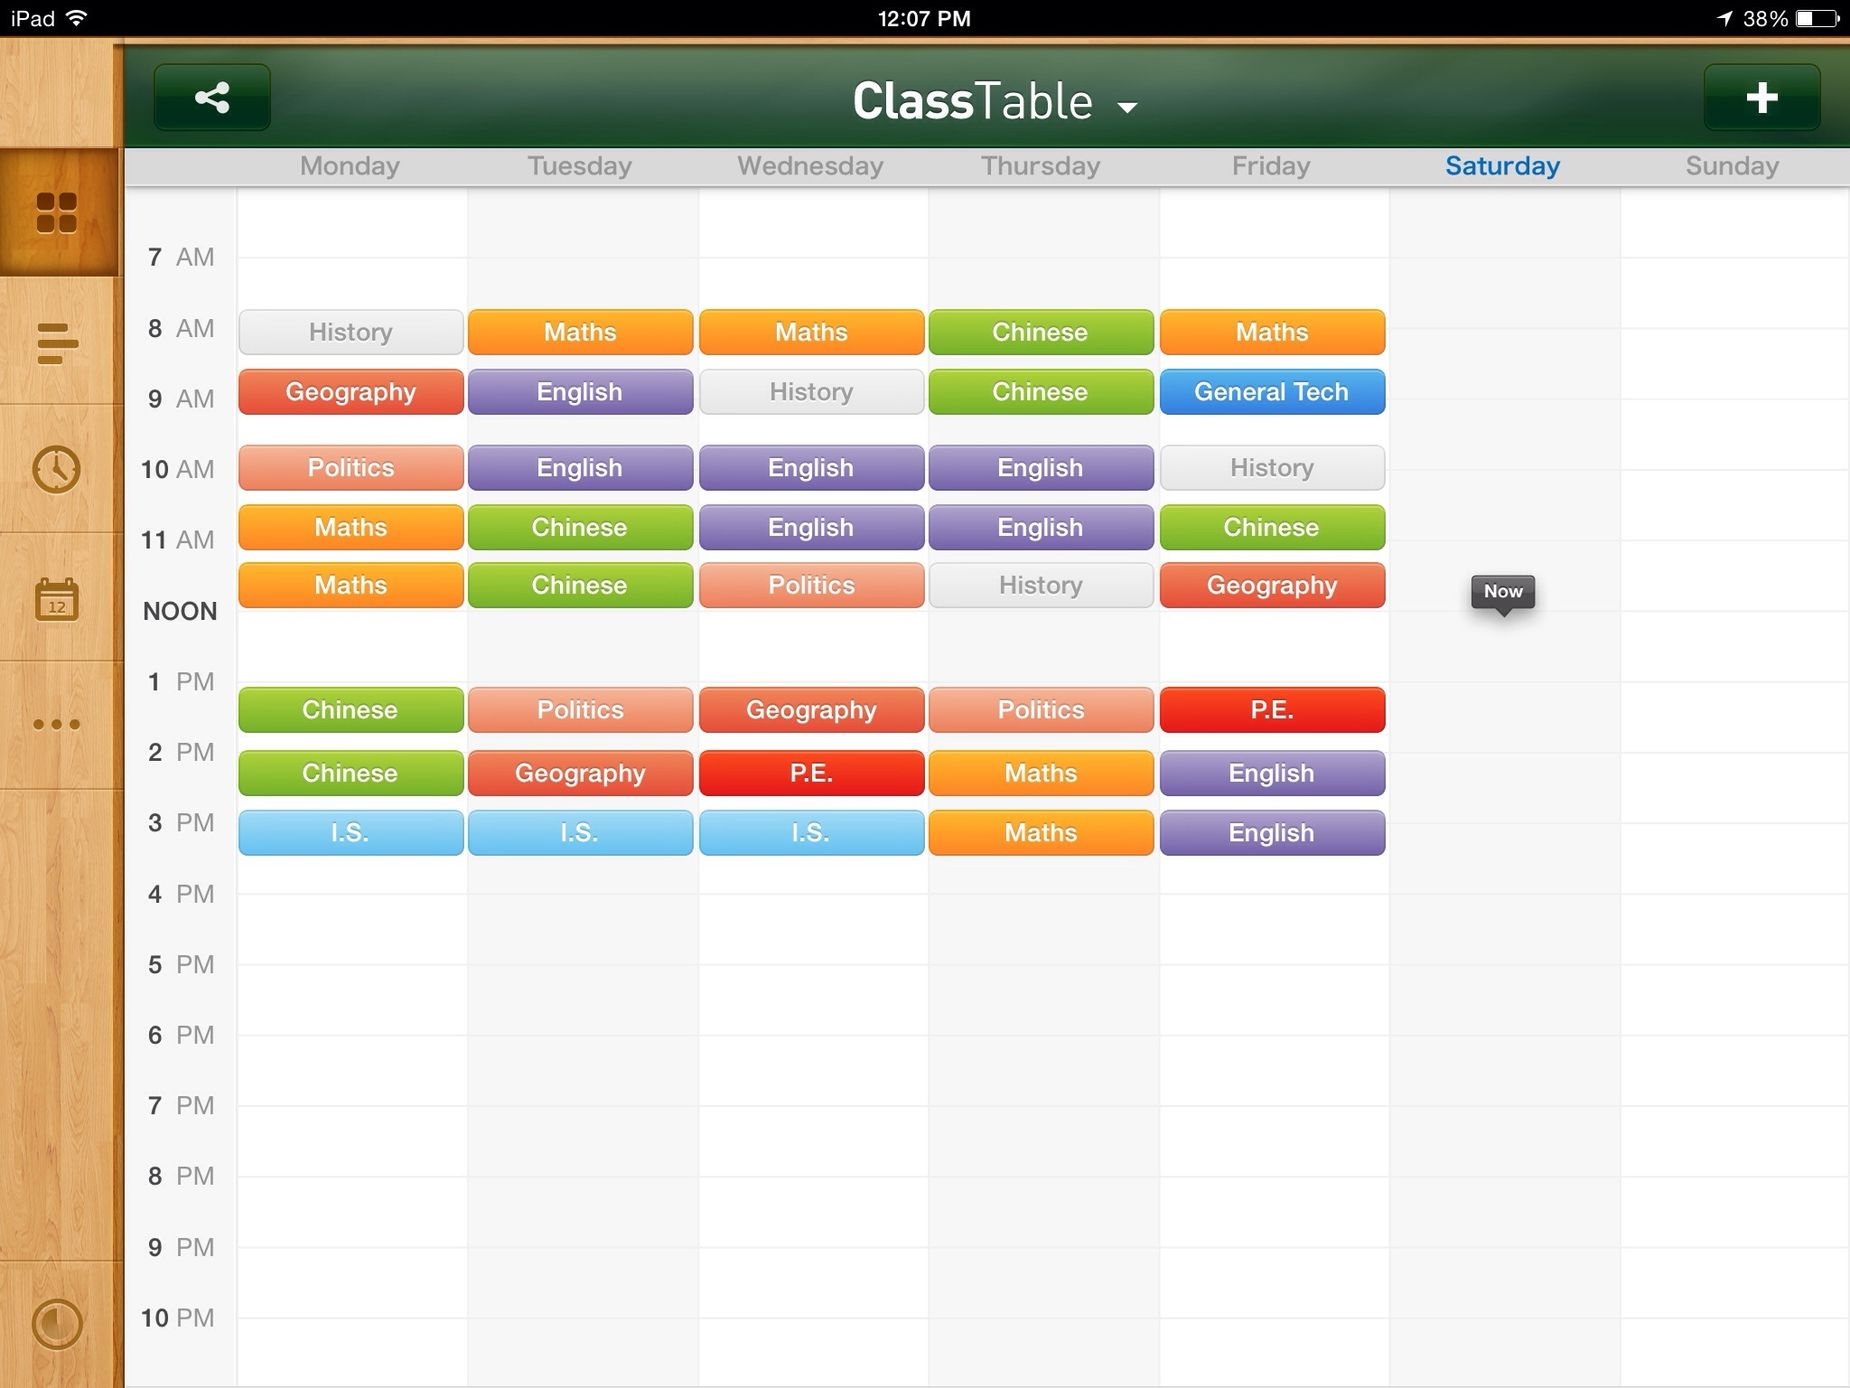 A rearranged and colored classtable of mine. New Term Classtable Schedule What about yours?